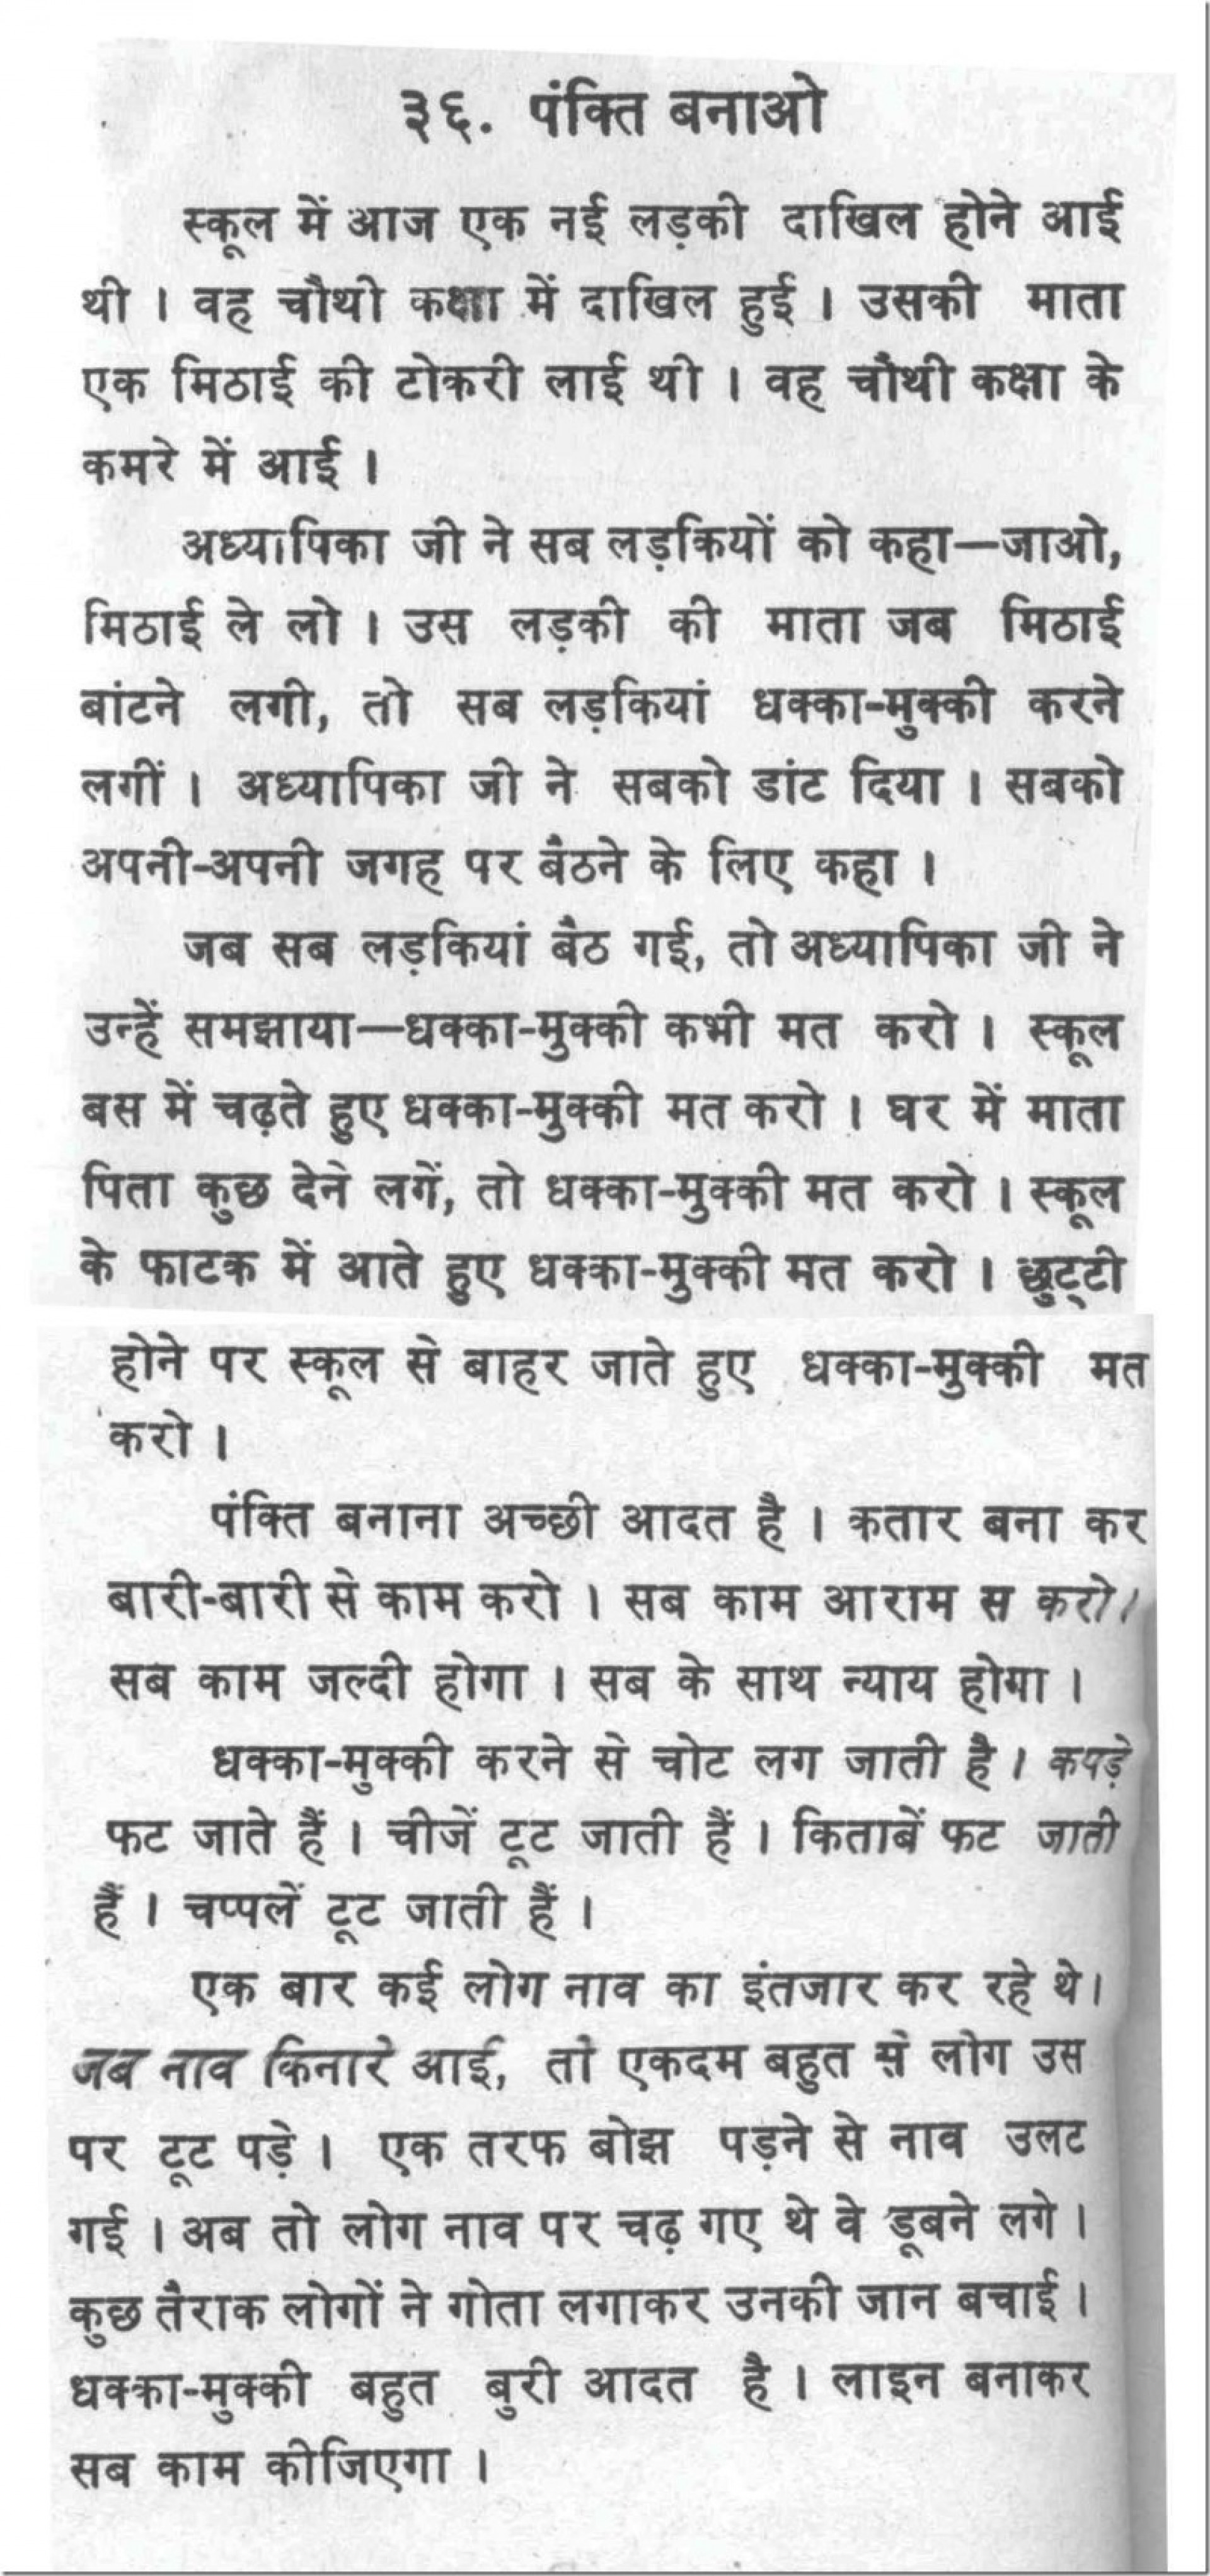 003 10030 Thumbresize8002c1704 Good Habits Essay In Hindi Exceptional Food Habit 1920